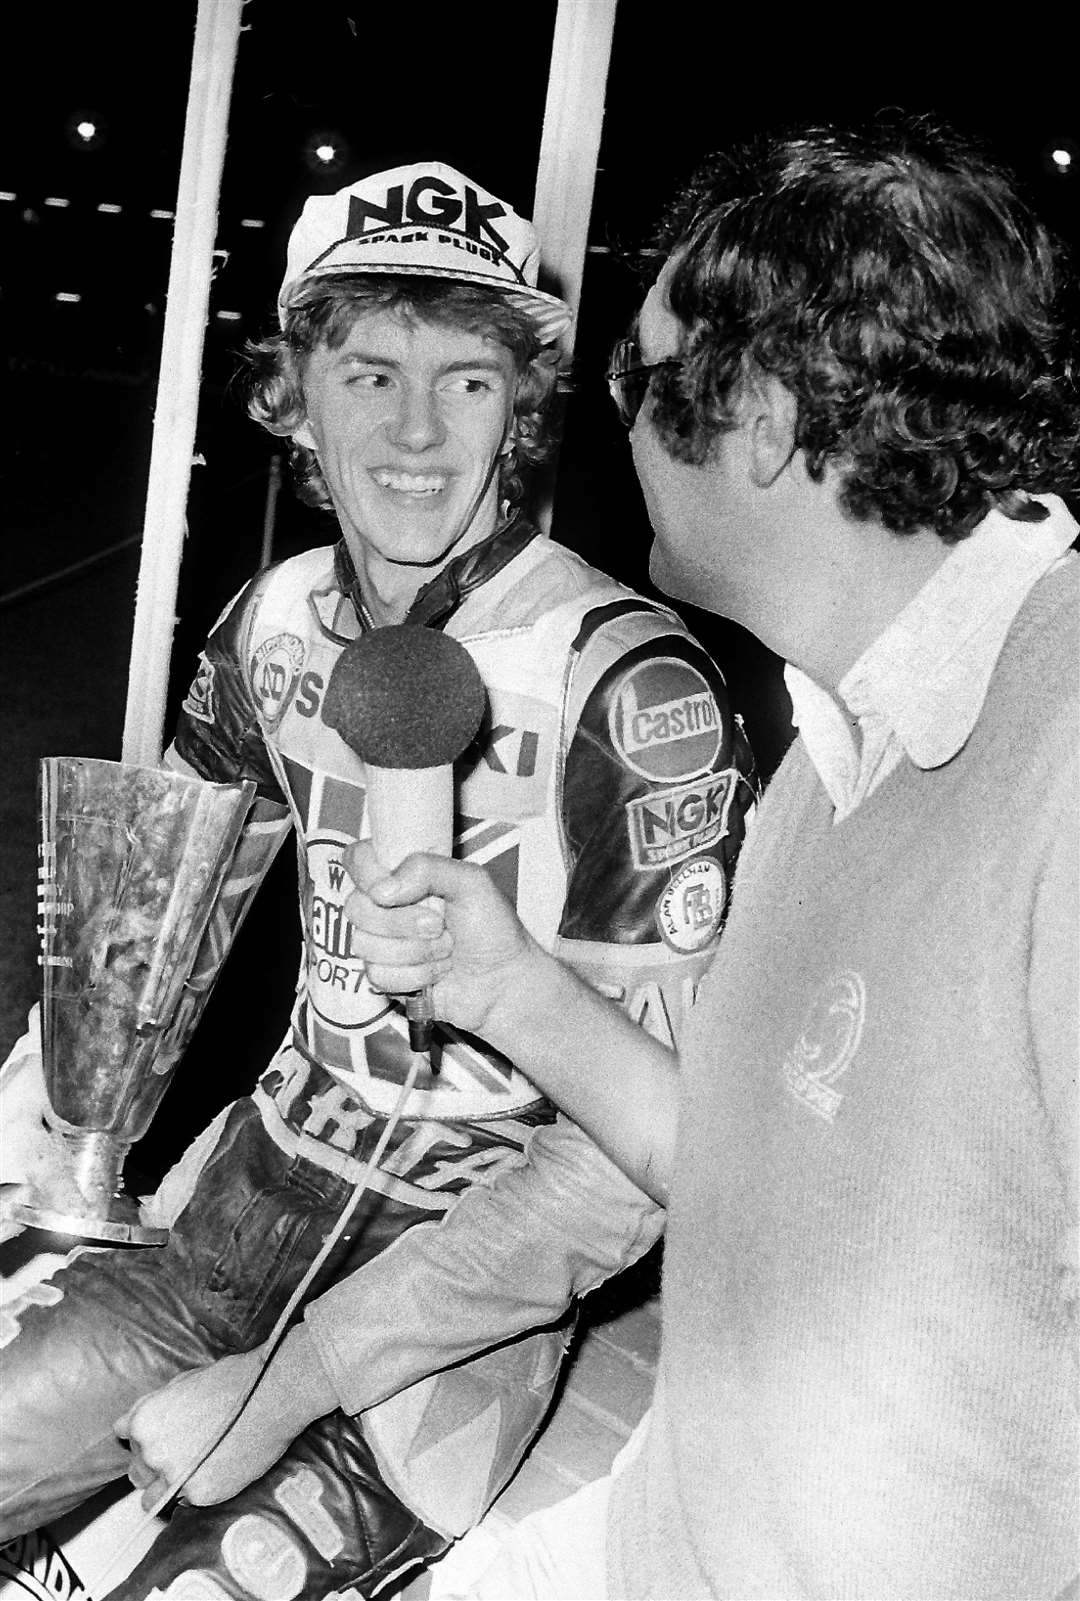 Mike on the mic: Michael Lee tells ITV's Dave Lanning how it feels to be the new speedway champion of the world. MNLF-WC615 (39283398)